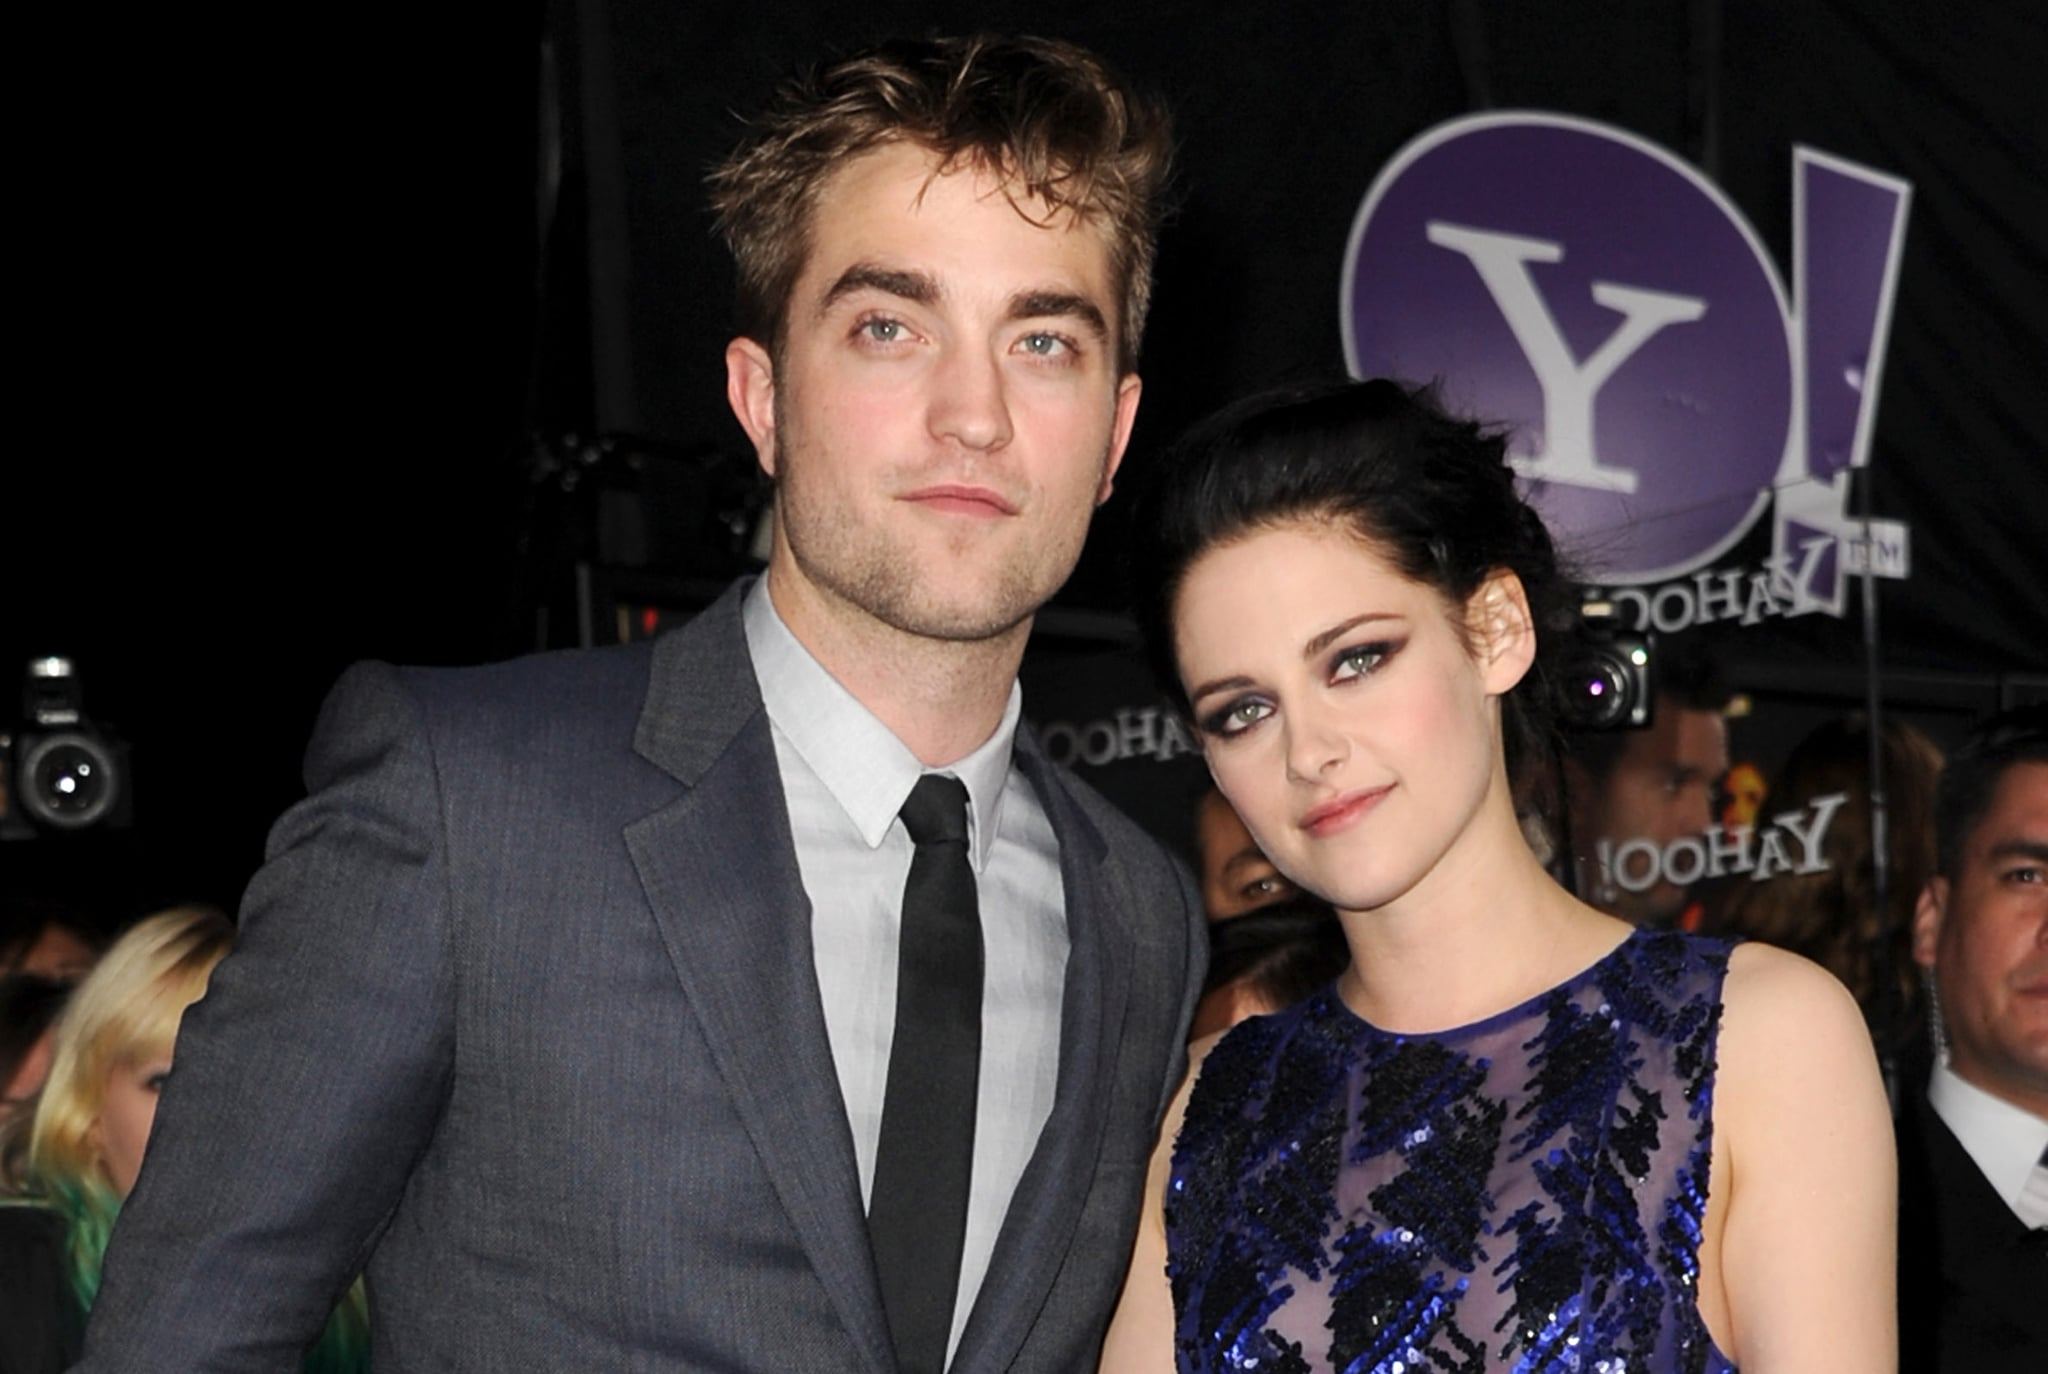 Robert pattinson dating kristen in 2019